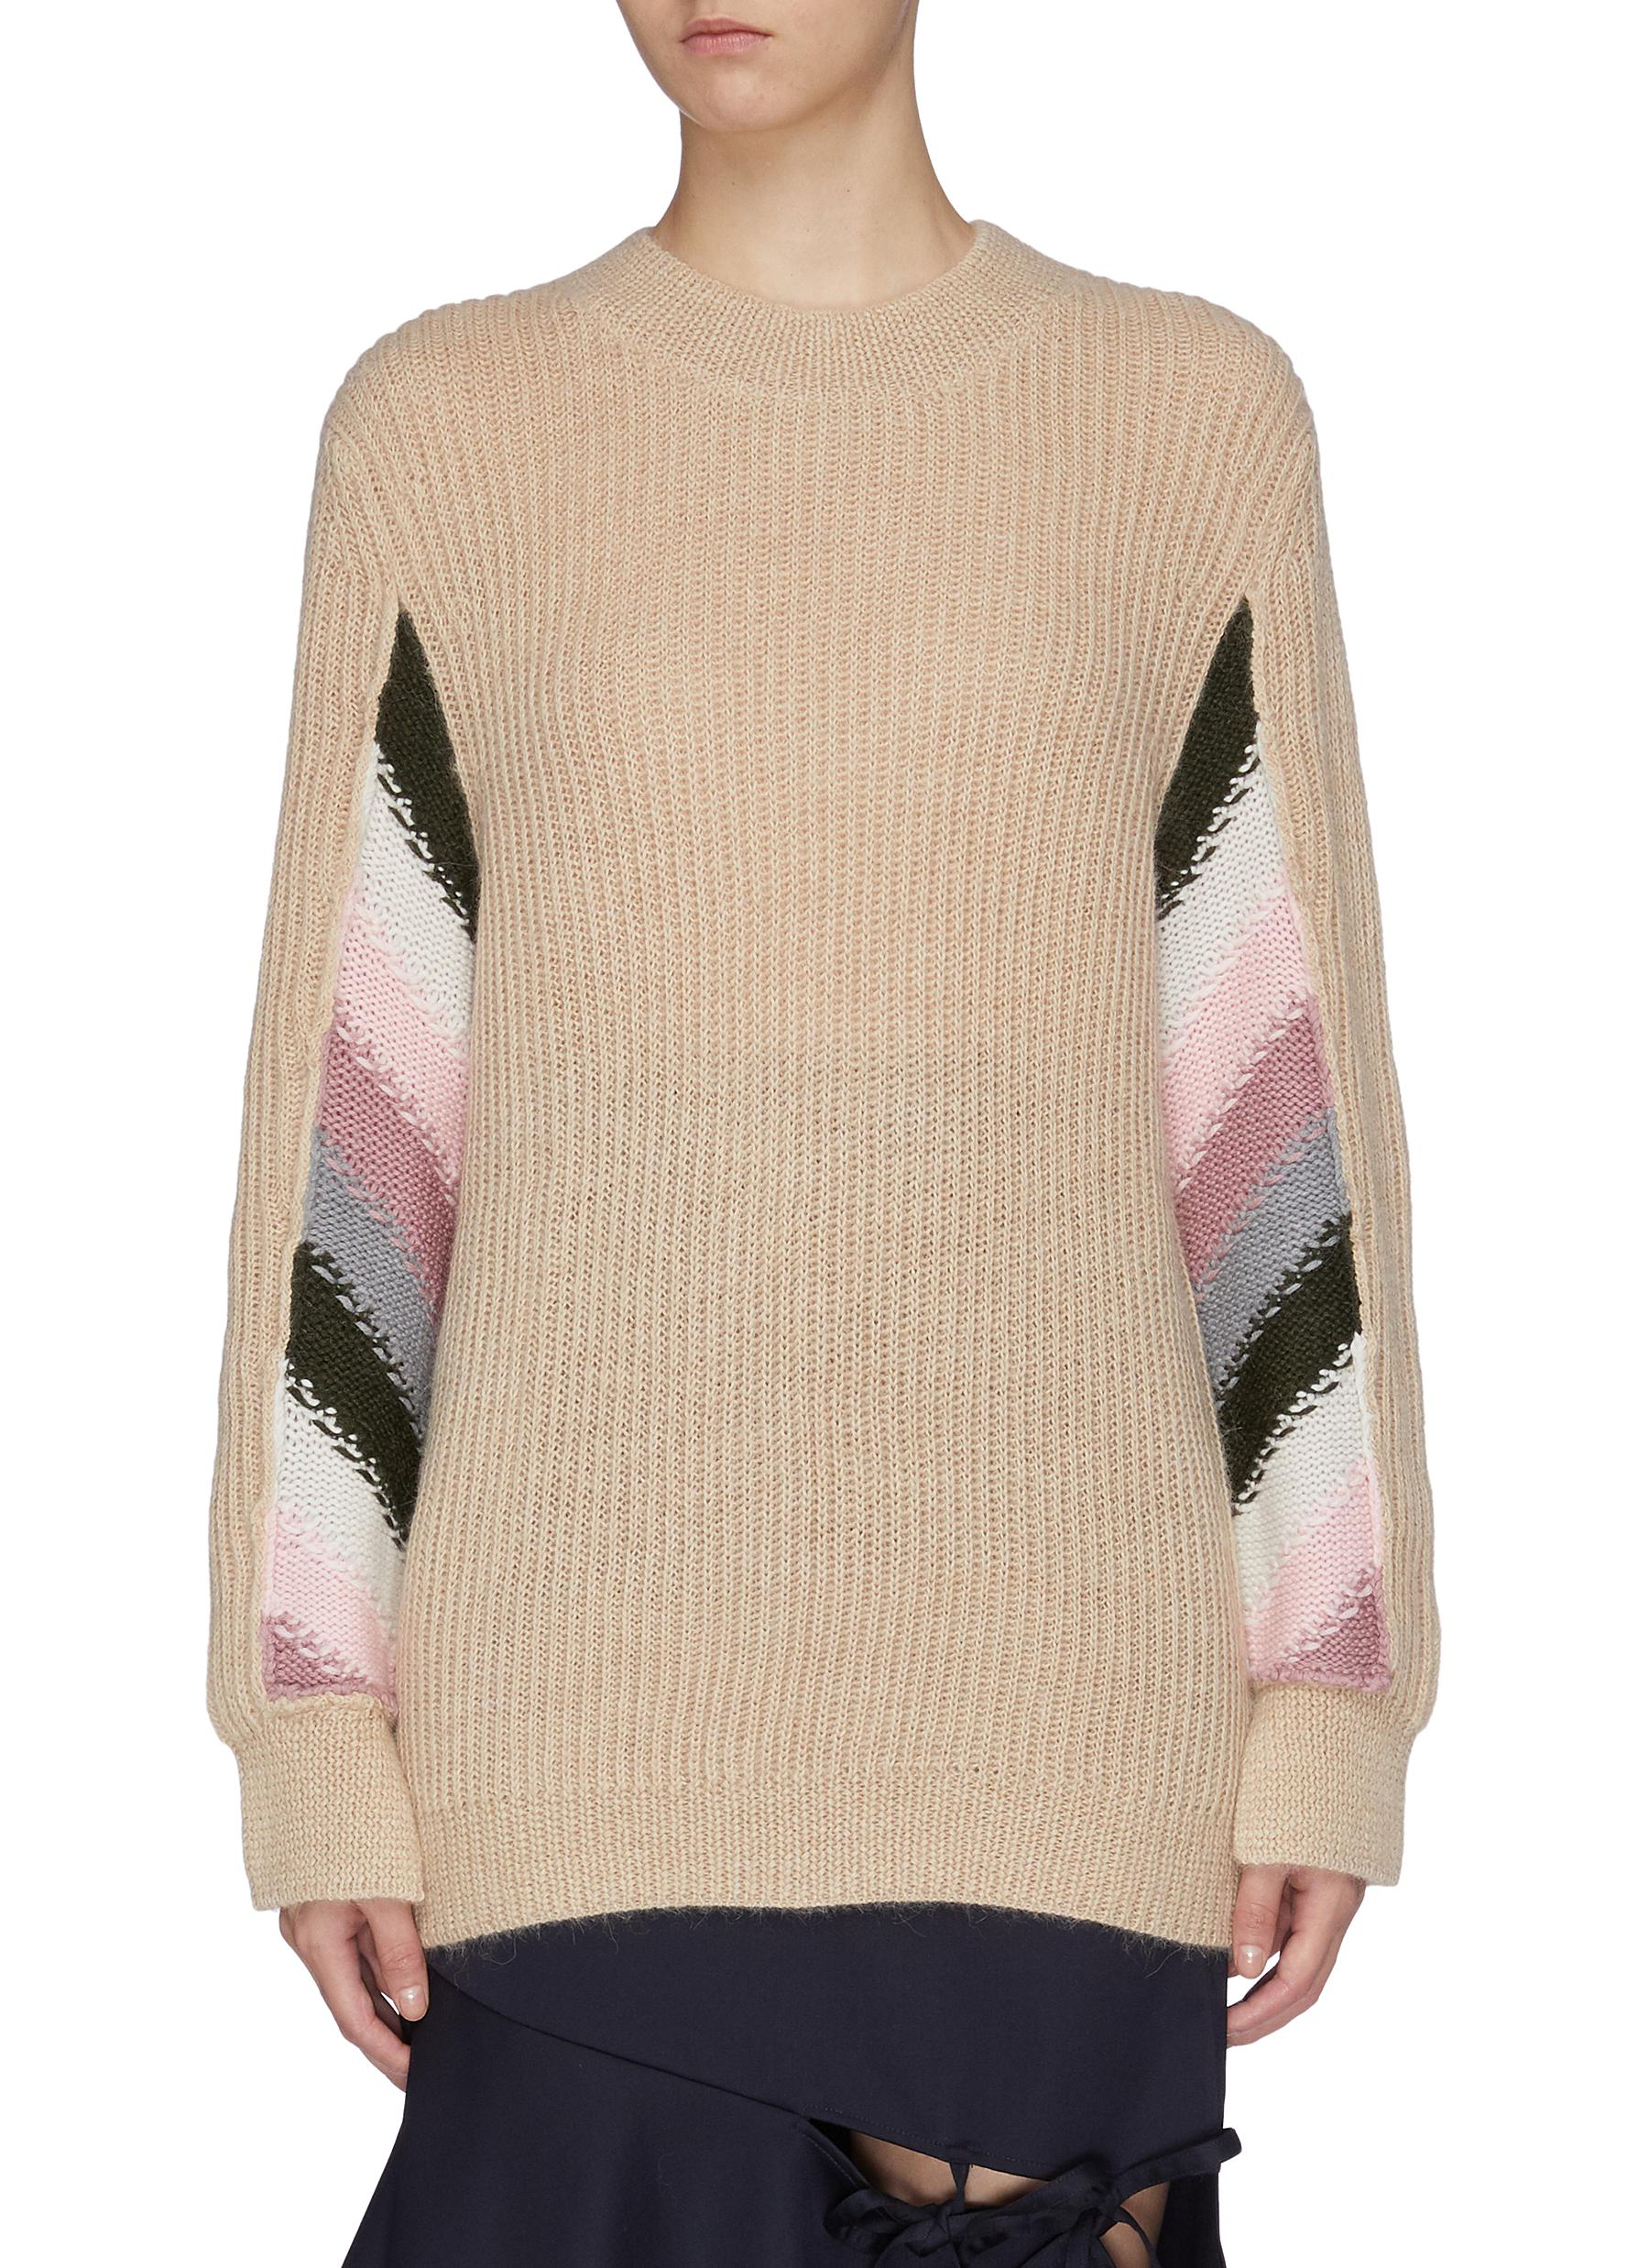 Stripe panel sleeve rib knit sweater by Jw Anderson